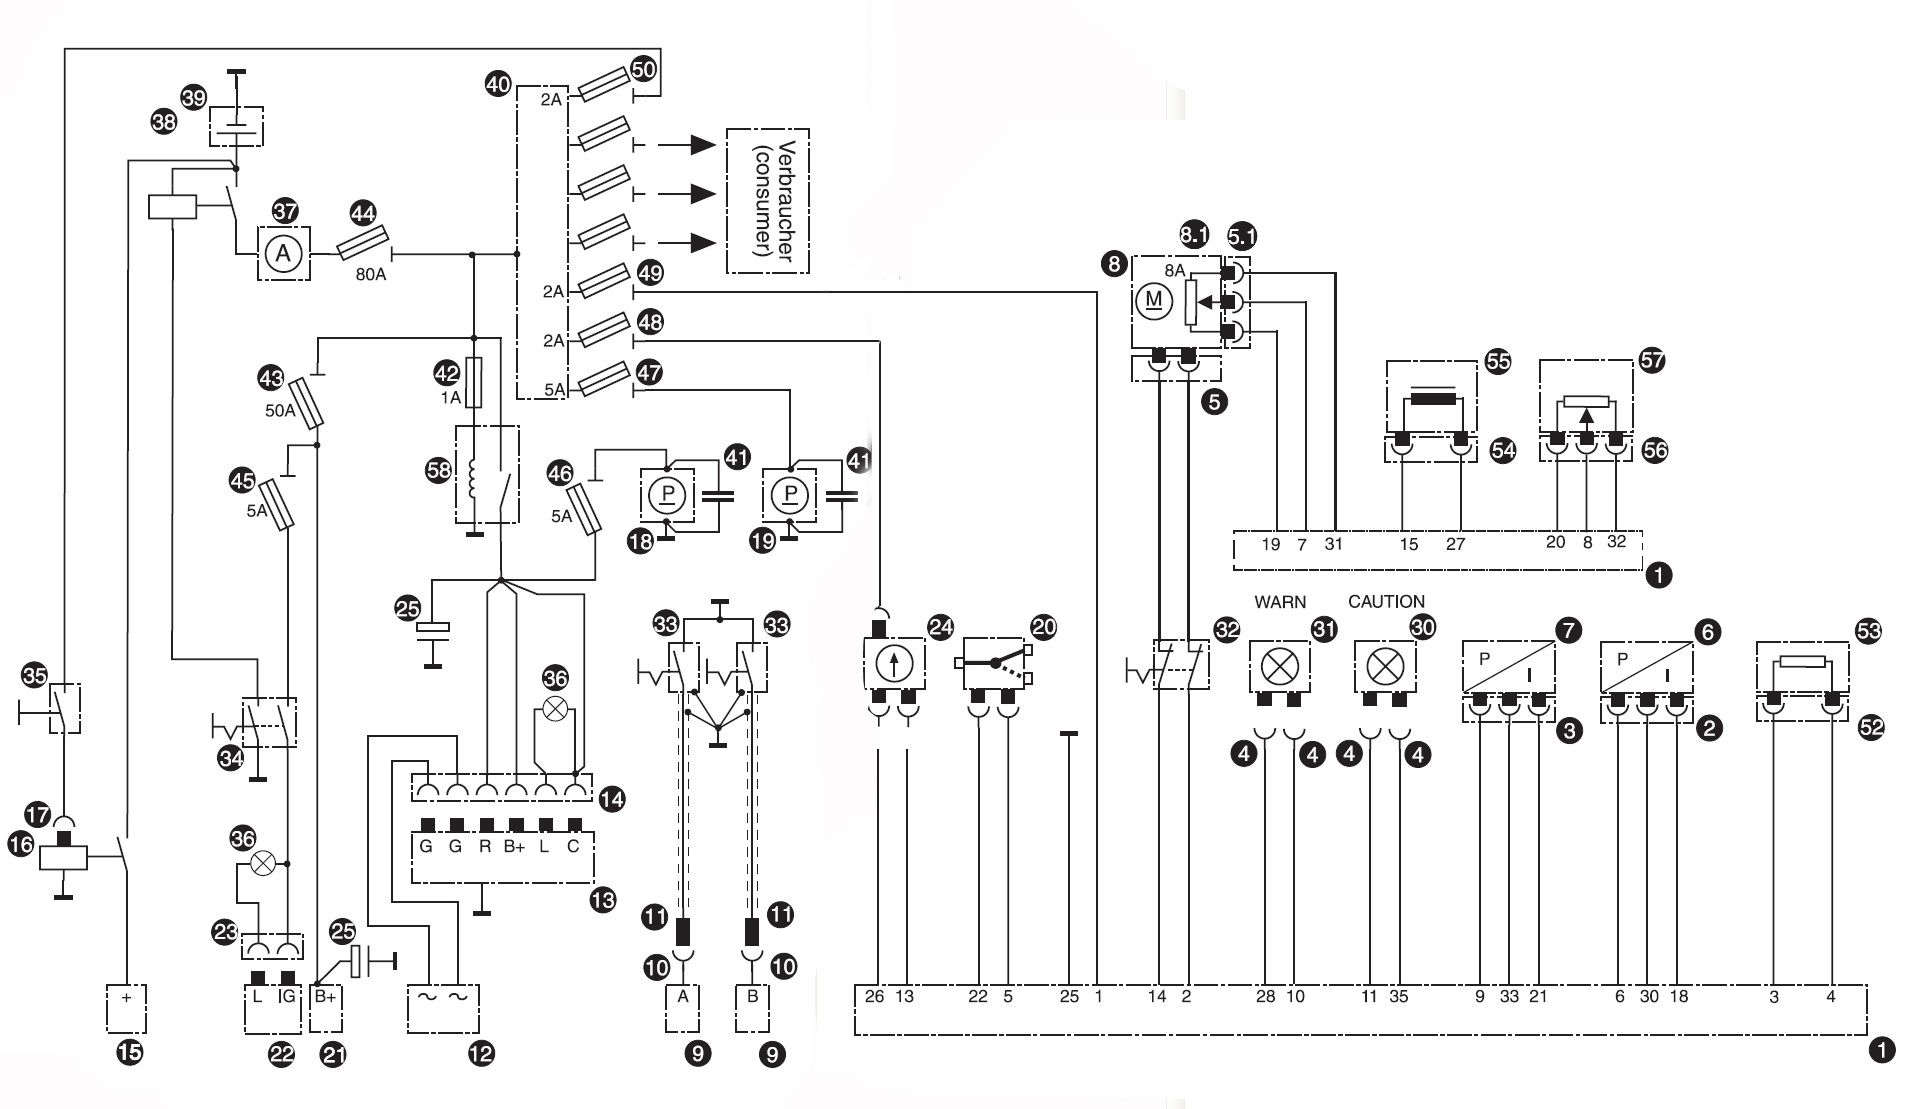 rotax 912 voltage regulator wiring diagram for rectifier voltage free printable wiring